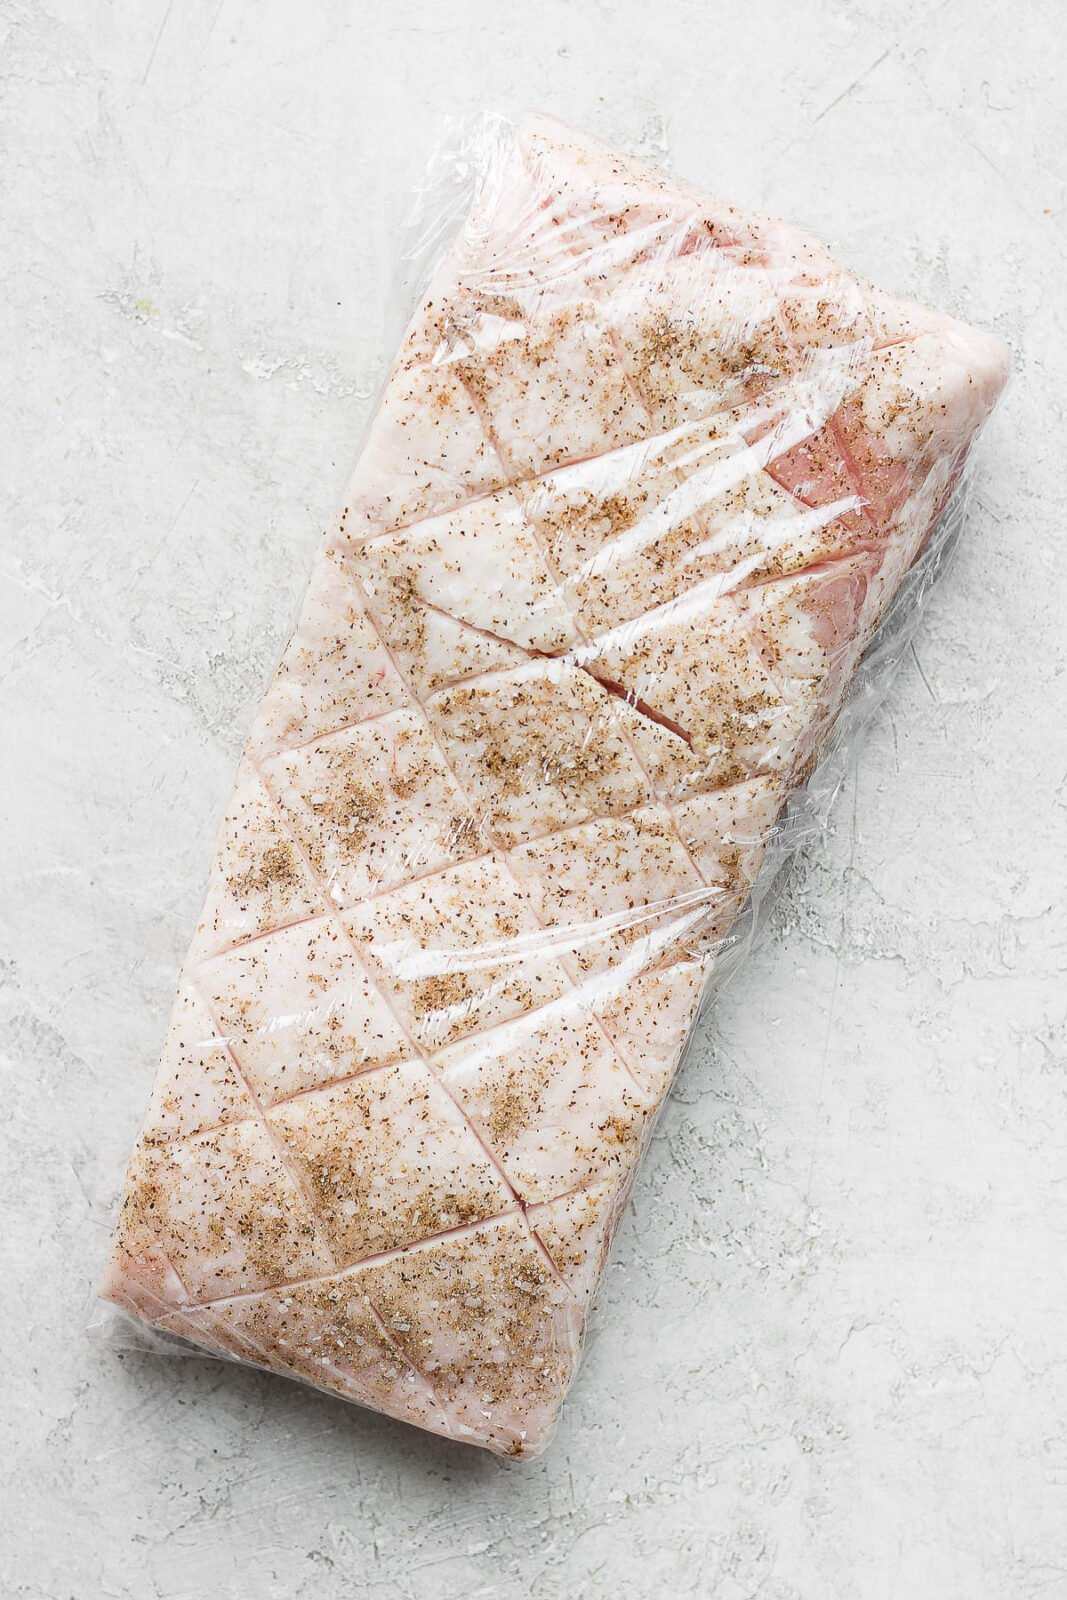 A piece of pork belly scored, rubbed with seasoning and wrapped plastic wrap.